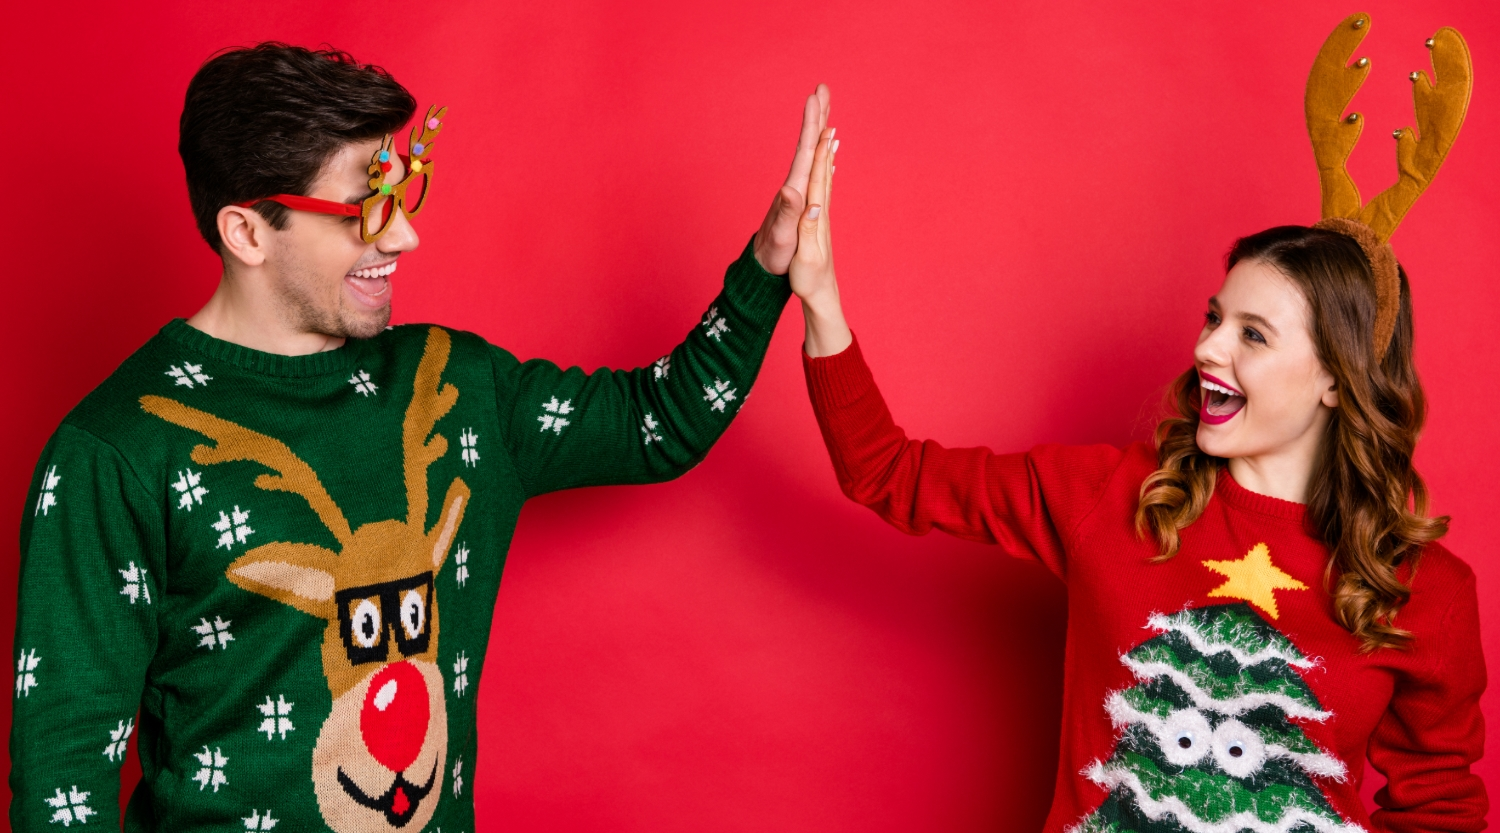 Stand Out from the Crowd on Christmas Jumper Day